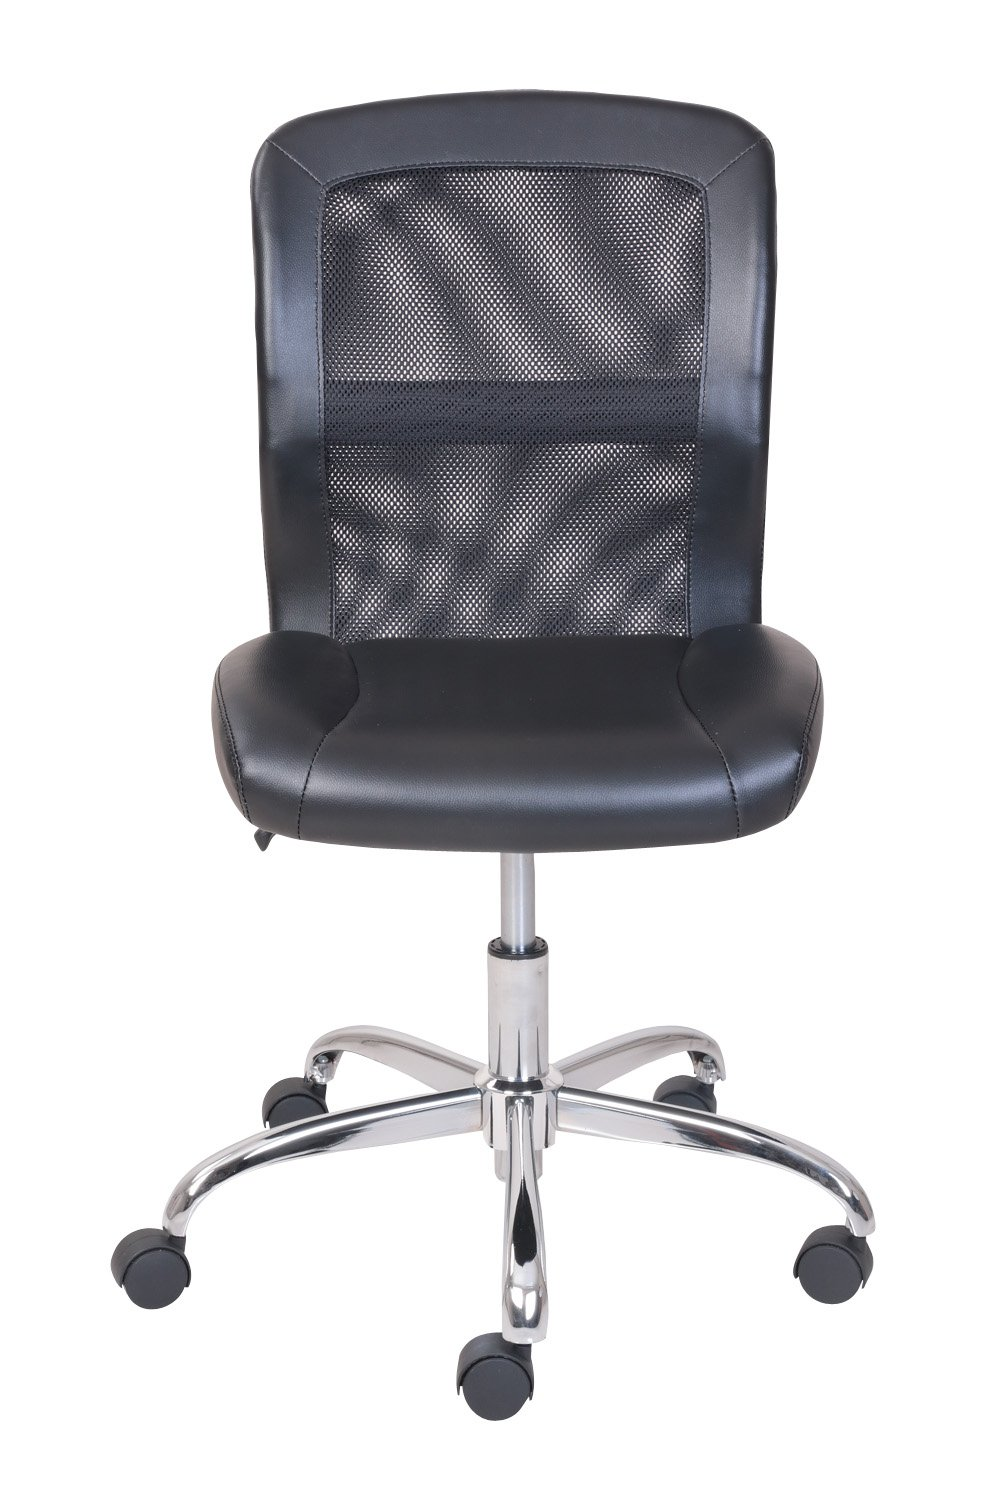 Comfortable Vinyl and Mesh Task Chair with Durable Metal Base, One-Touch Pneumatic Height Adjustment, Padded Seat and Back for Comfort + Expert Home Guide by Love US by LOVE US (Image #5)